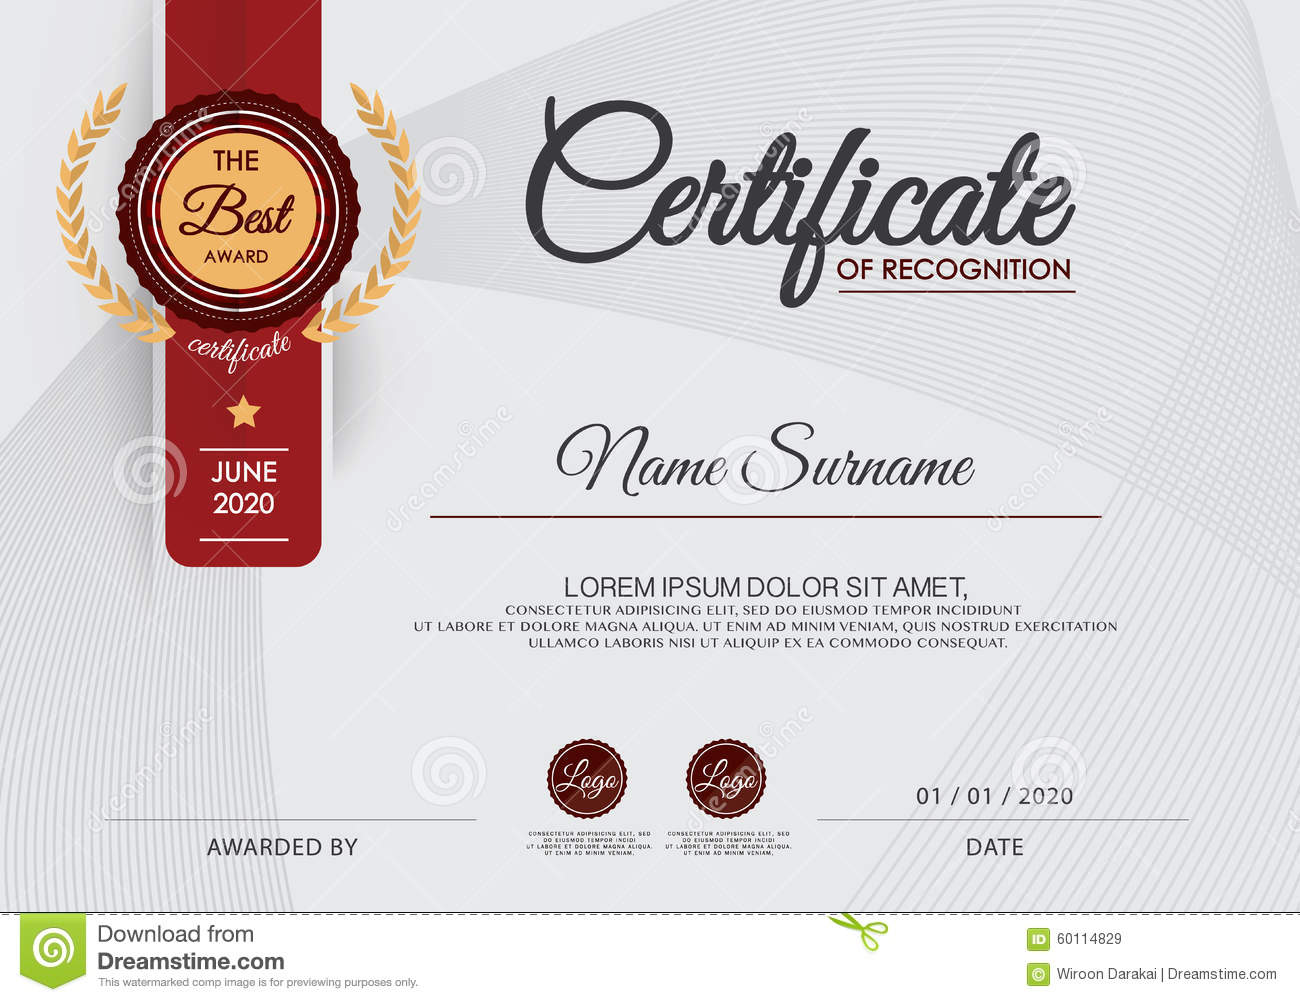 Certificate stock illustrations 104086 certificate stock certificate stock illustrations 104086 certificate stock illustrations vectors clipart dreamstime yadclub Choice Image